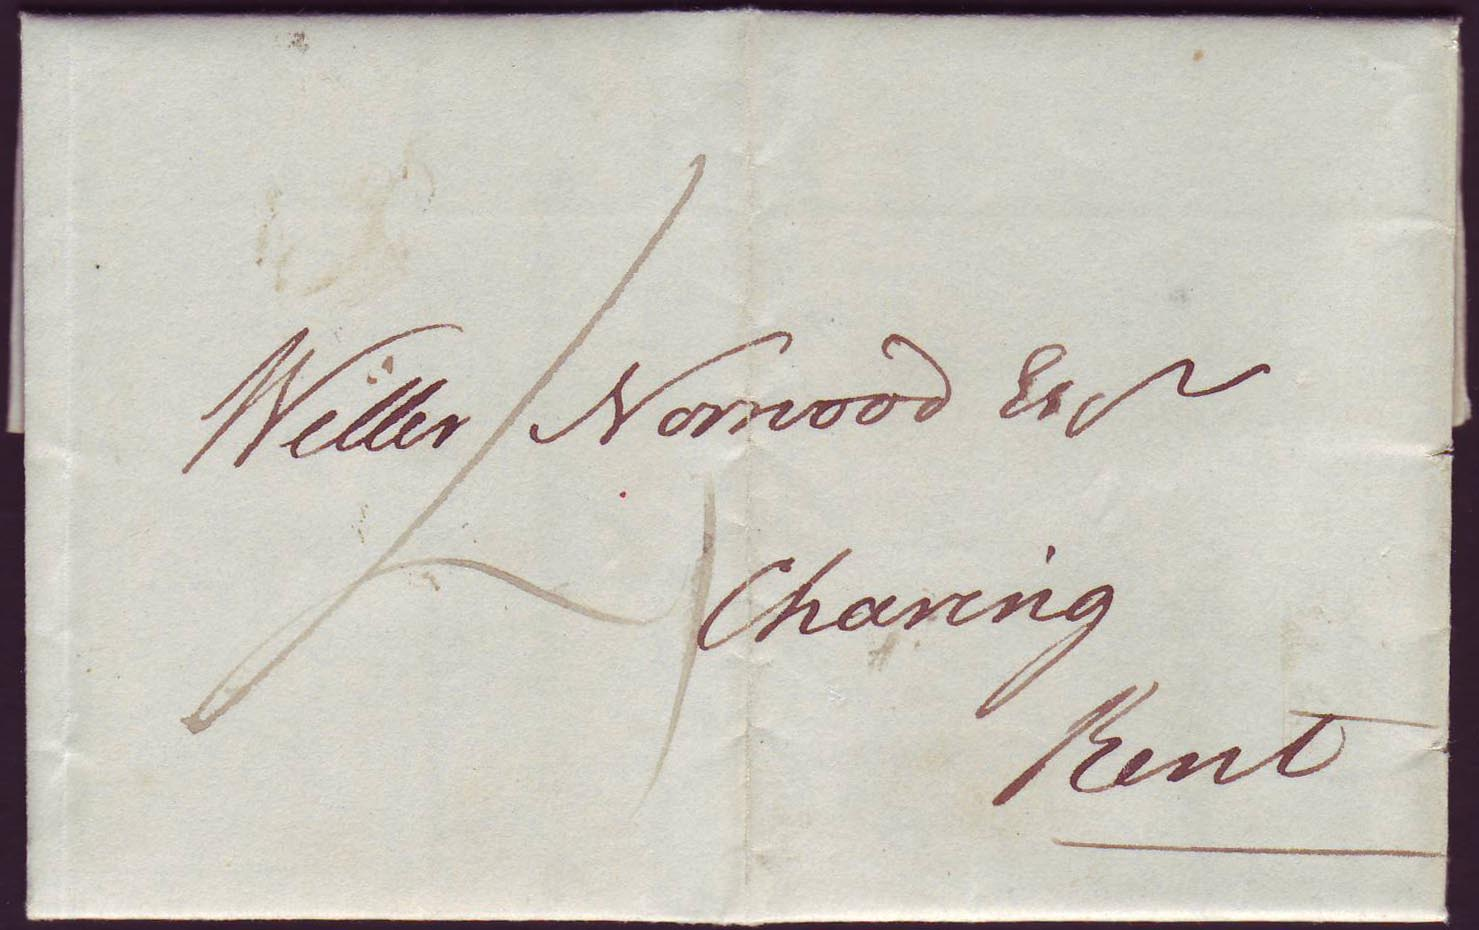 Letter posted on the last day use of Uniform Fourpenny Post -- January 9, 1840 -- used from Murston to Charing, Kent, with manuscript 4 mark.